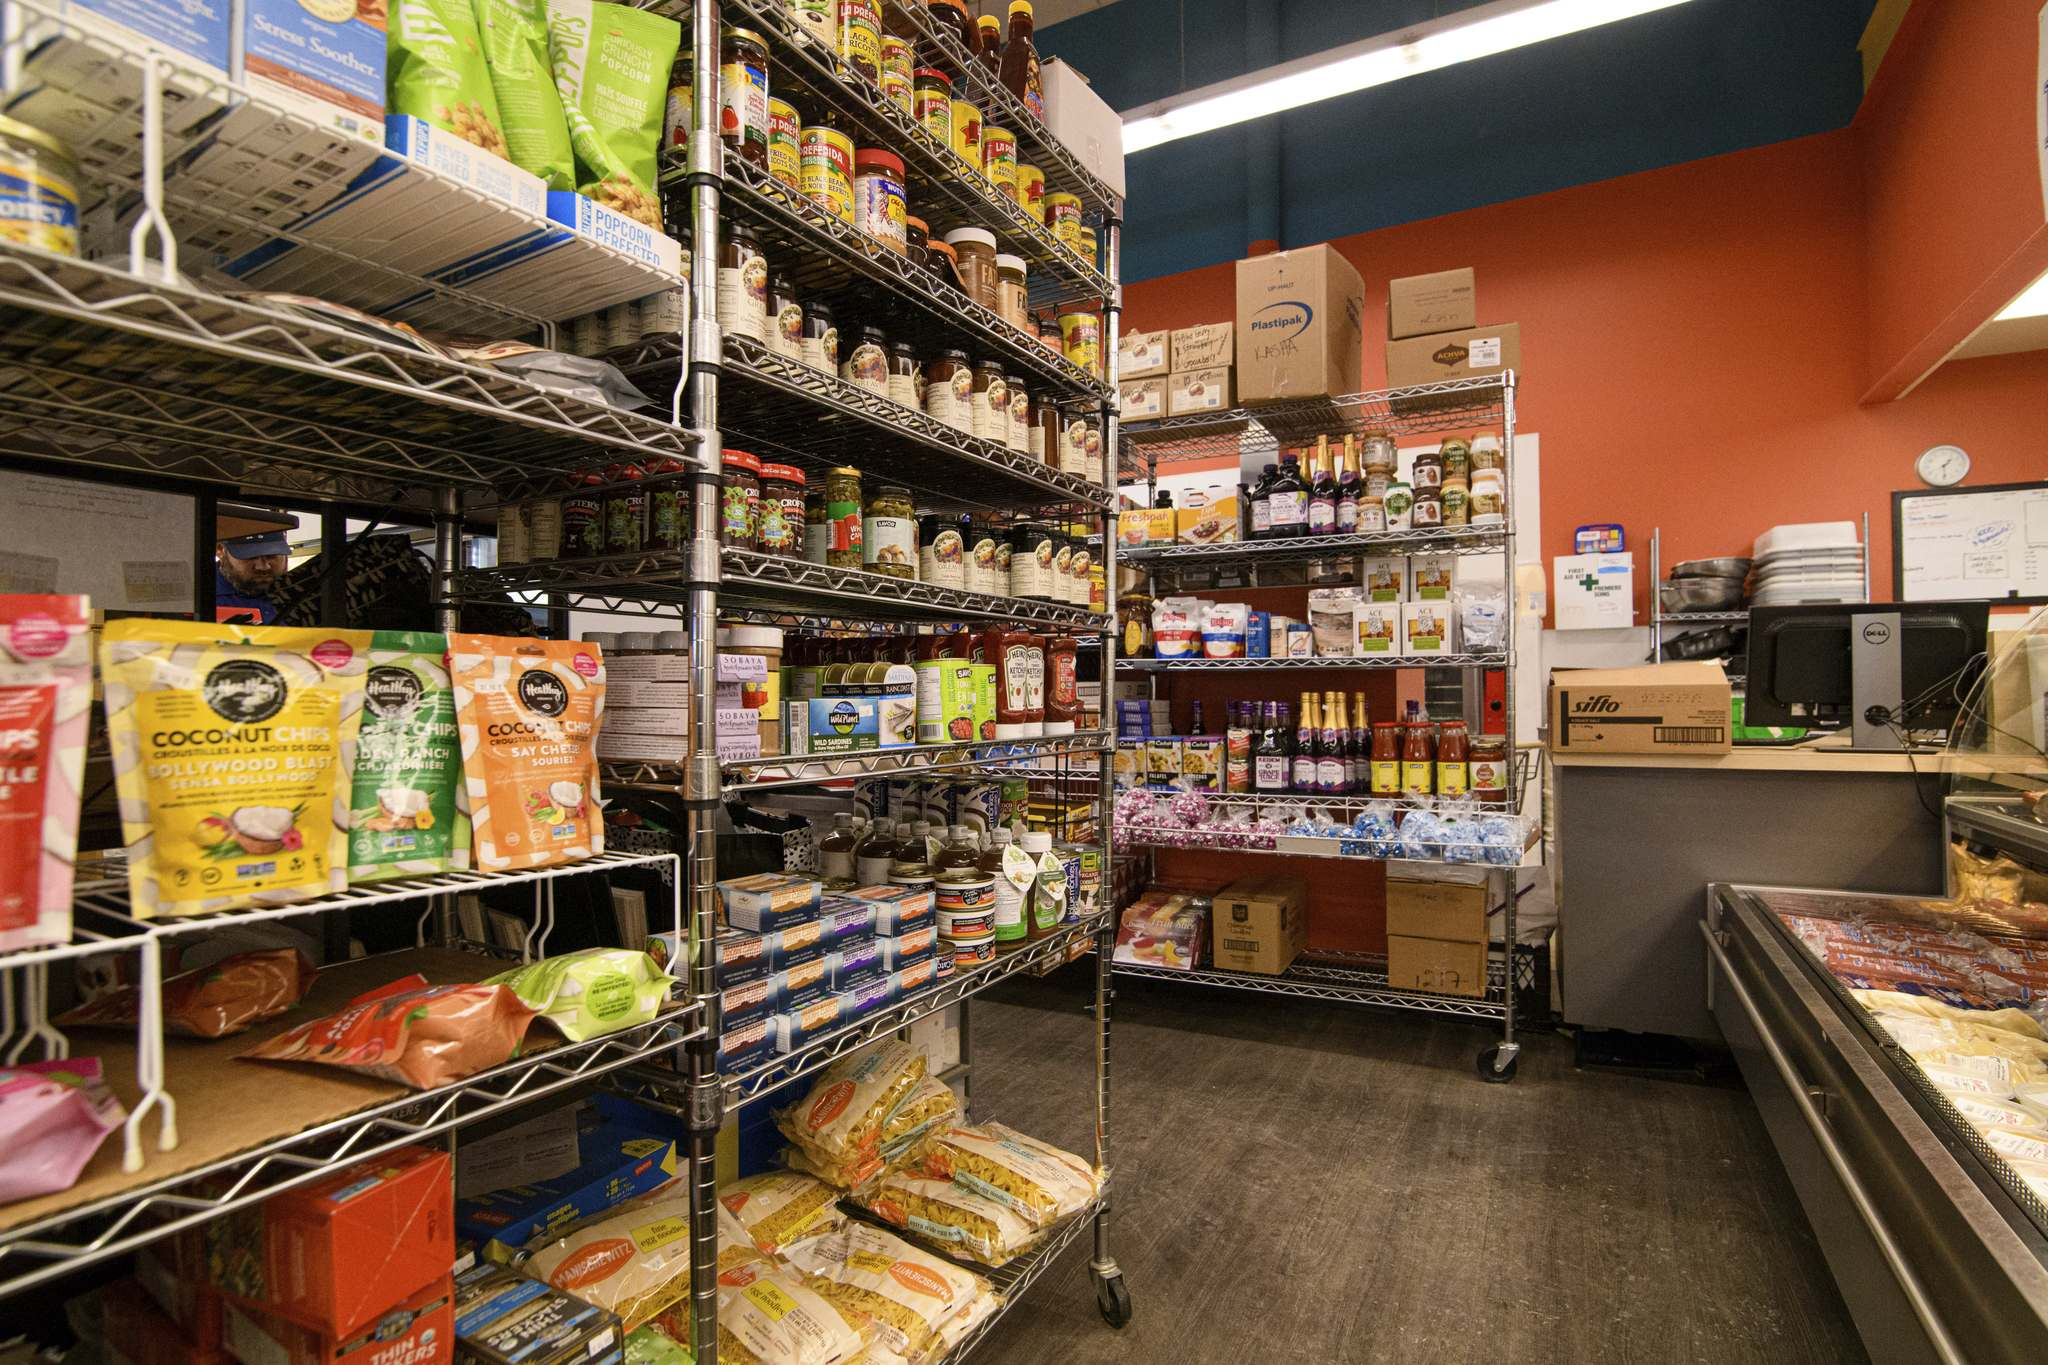 MIKE SUDOMA / WINNIPEG FREE PRESS</p><p>Shelves are stocked with grocery specialty items inside Bernstein's Delicatessen.</p>